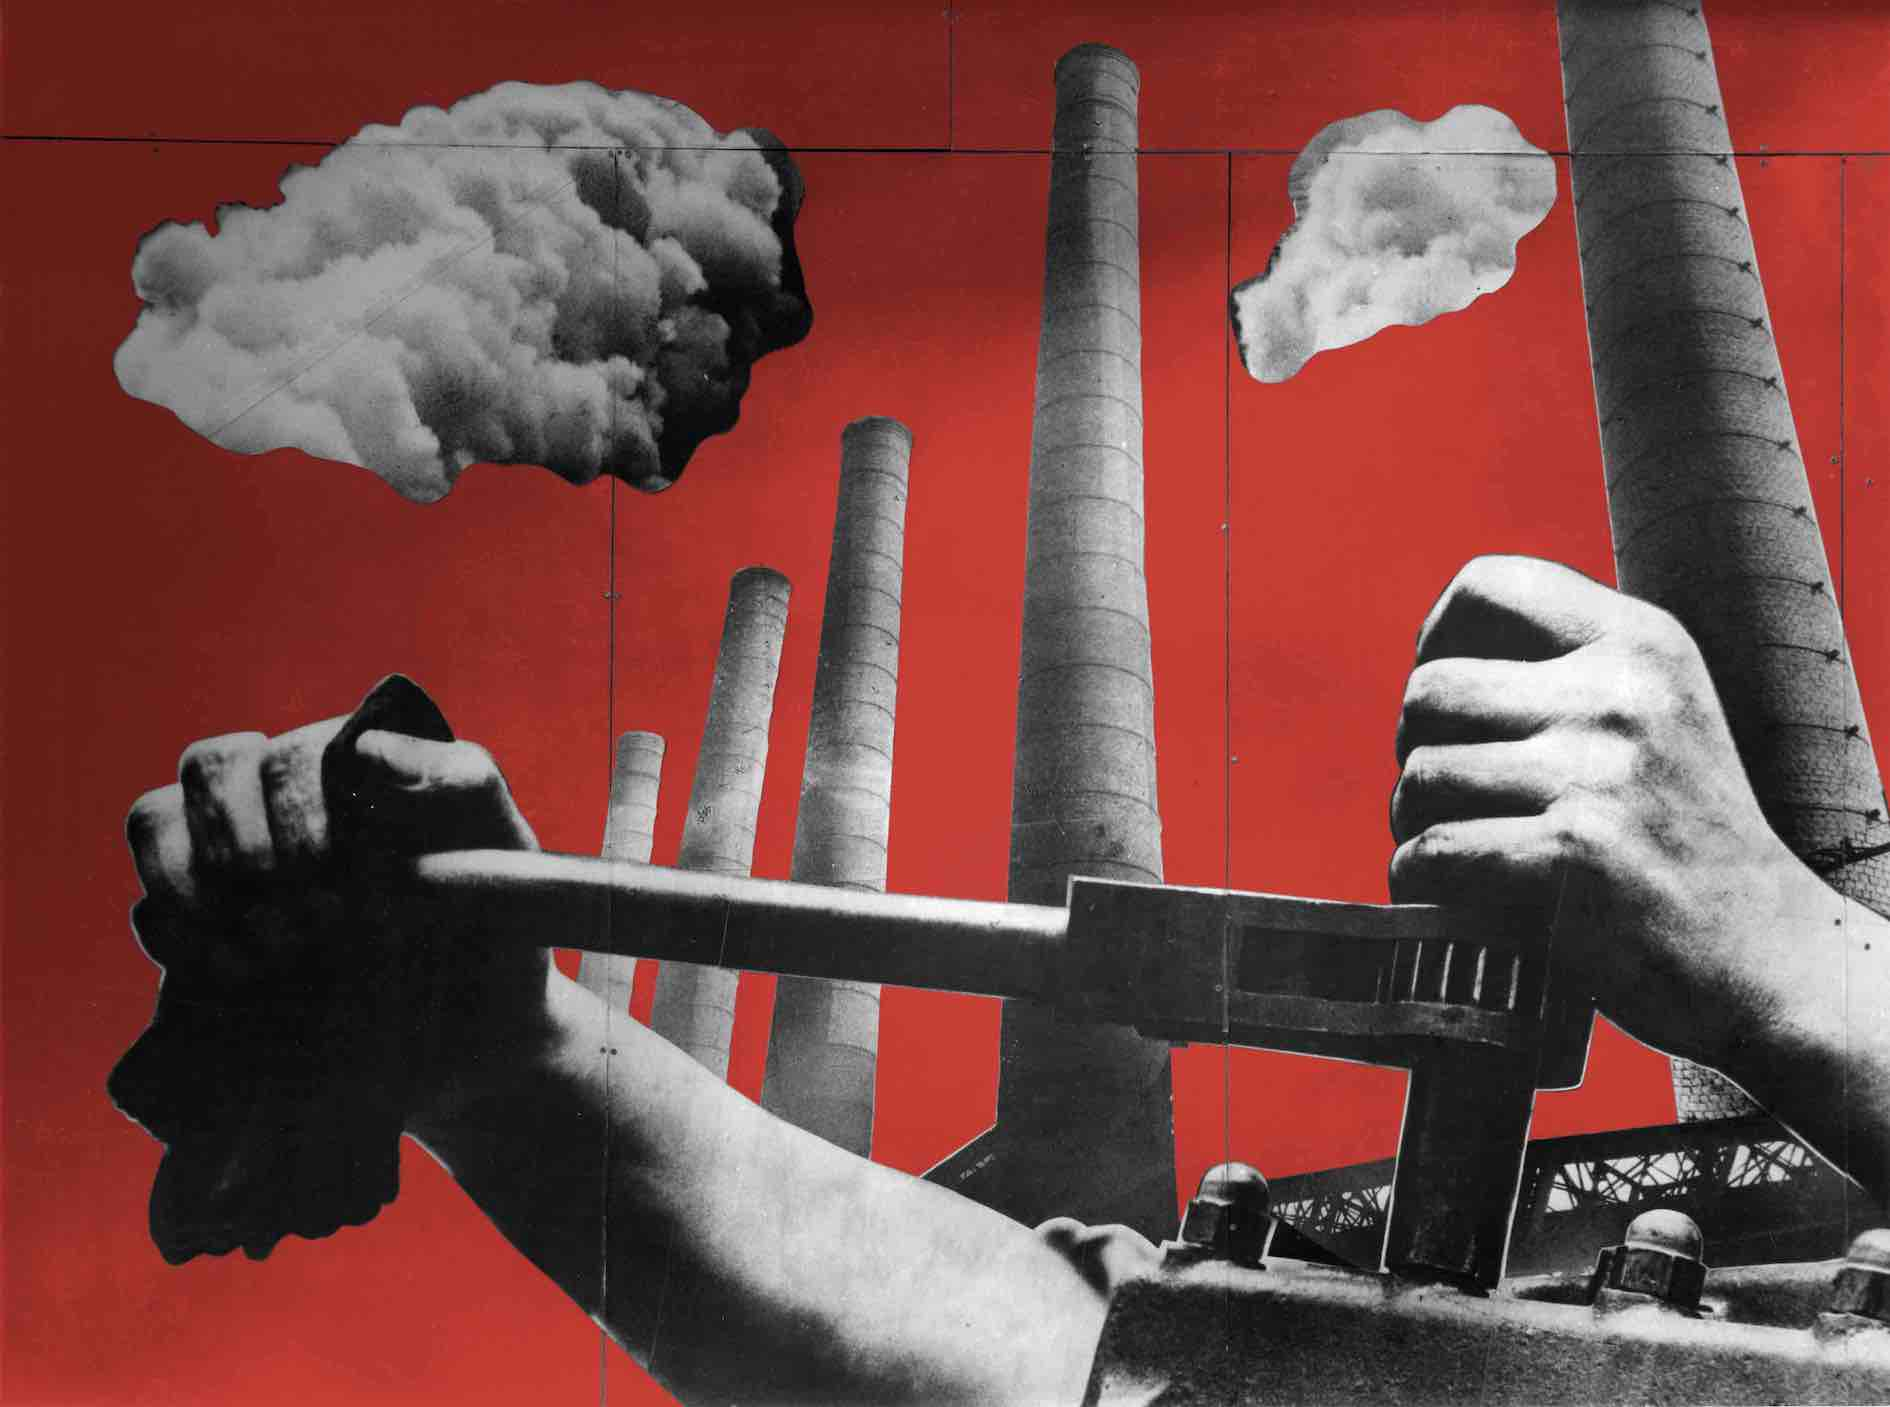 Charlotte Perriand, Fernand Léger, photomontage for the Ministery of Agriculture pavilion, International Exhibition of Art and Technology in Modern Life, Paris 1937©Charlotte Perriand Archives